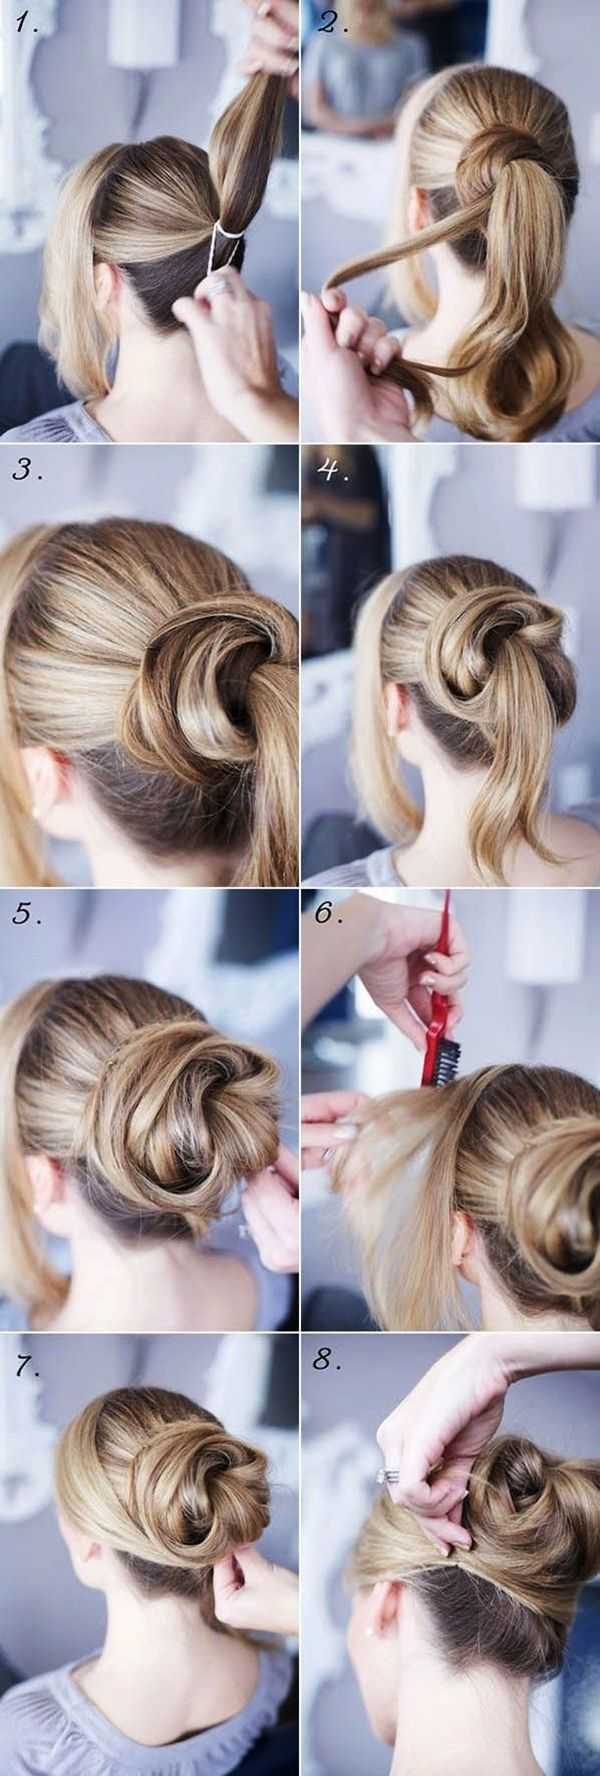 15 easy step by step hairstyles for long hair | hair style